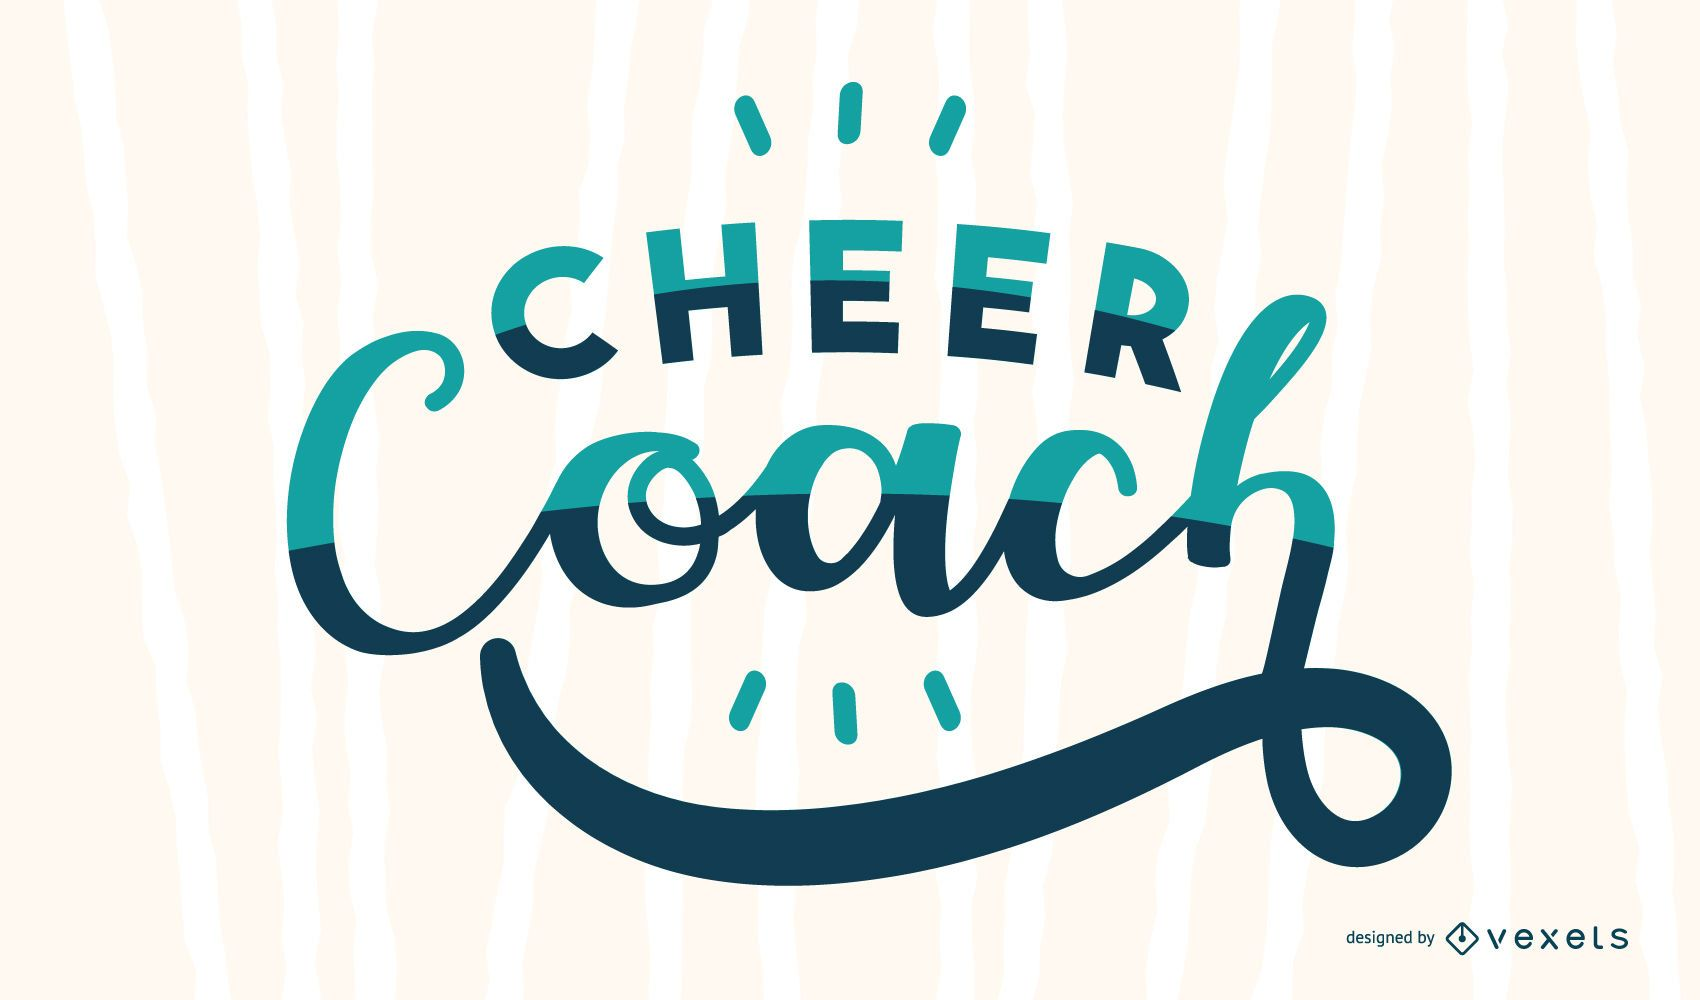 Cheer coach lettering design